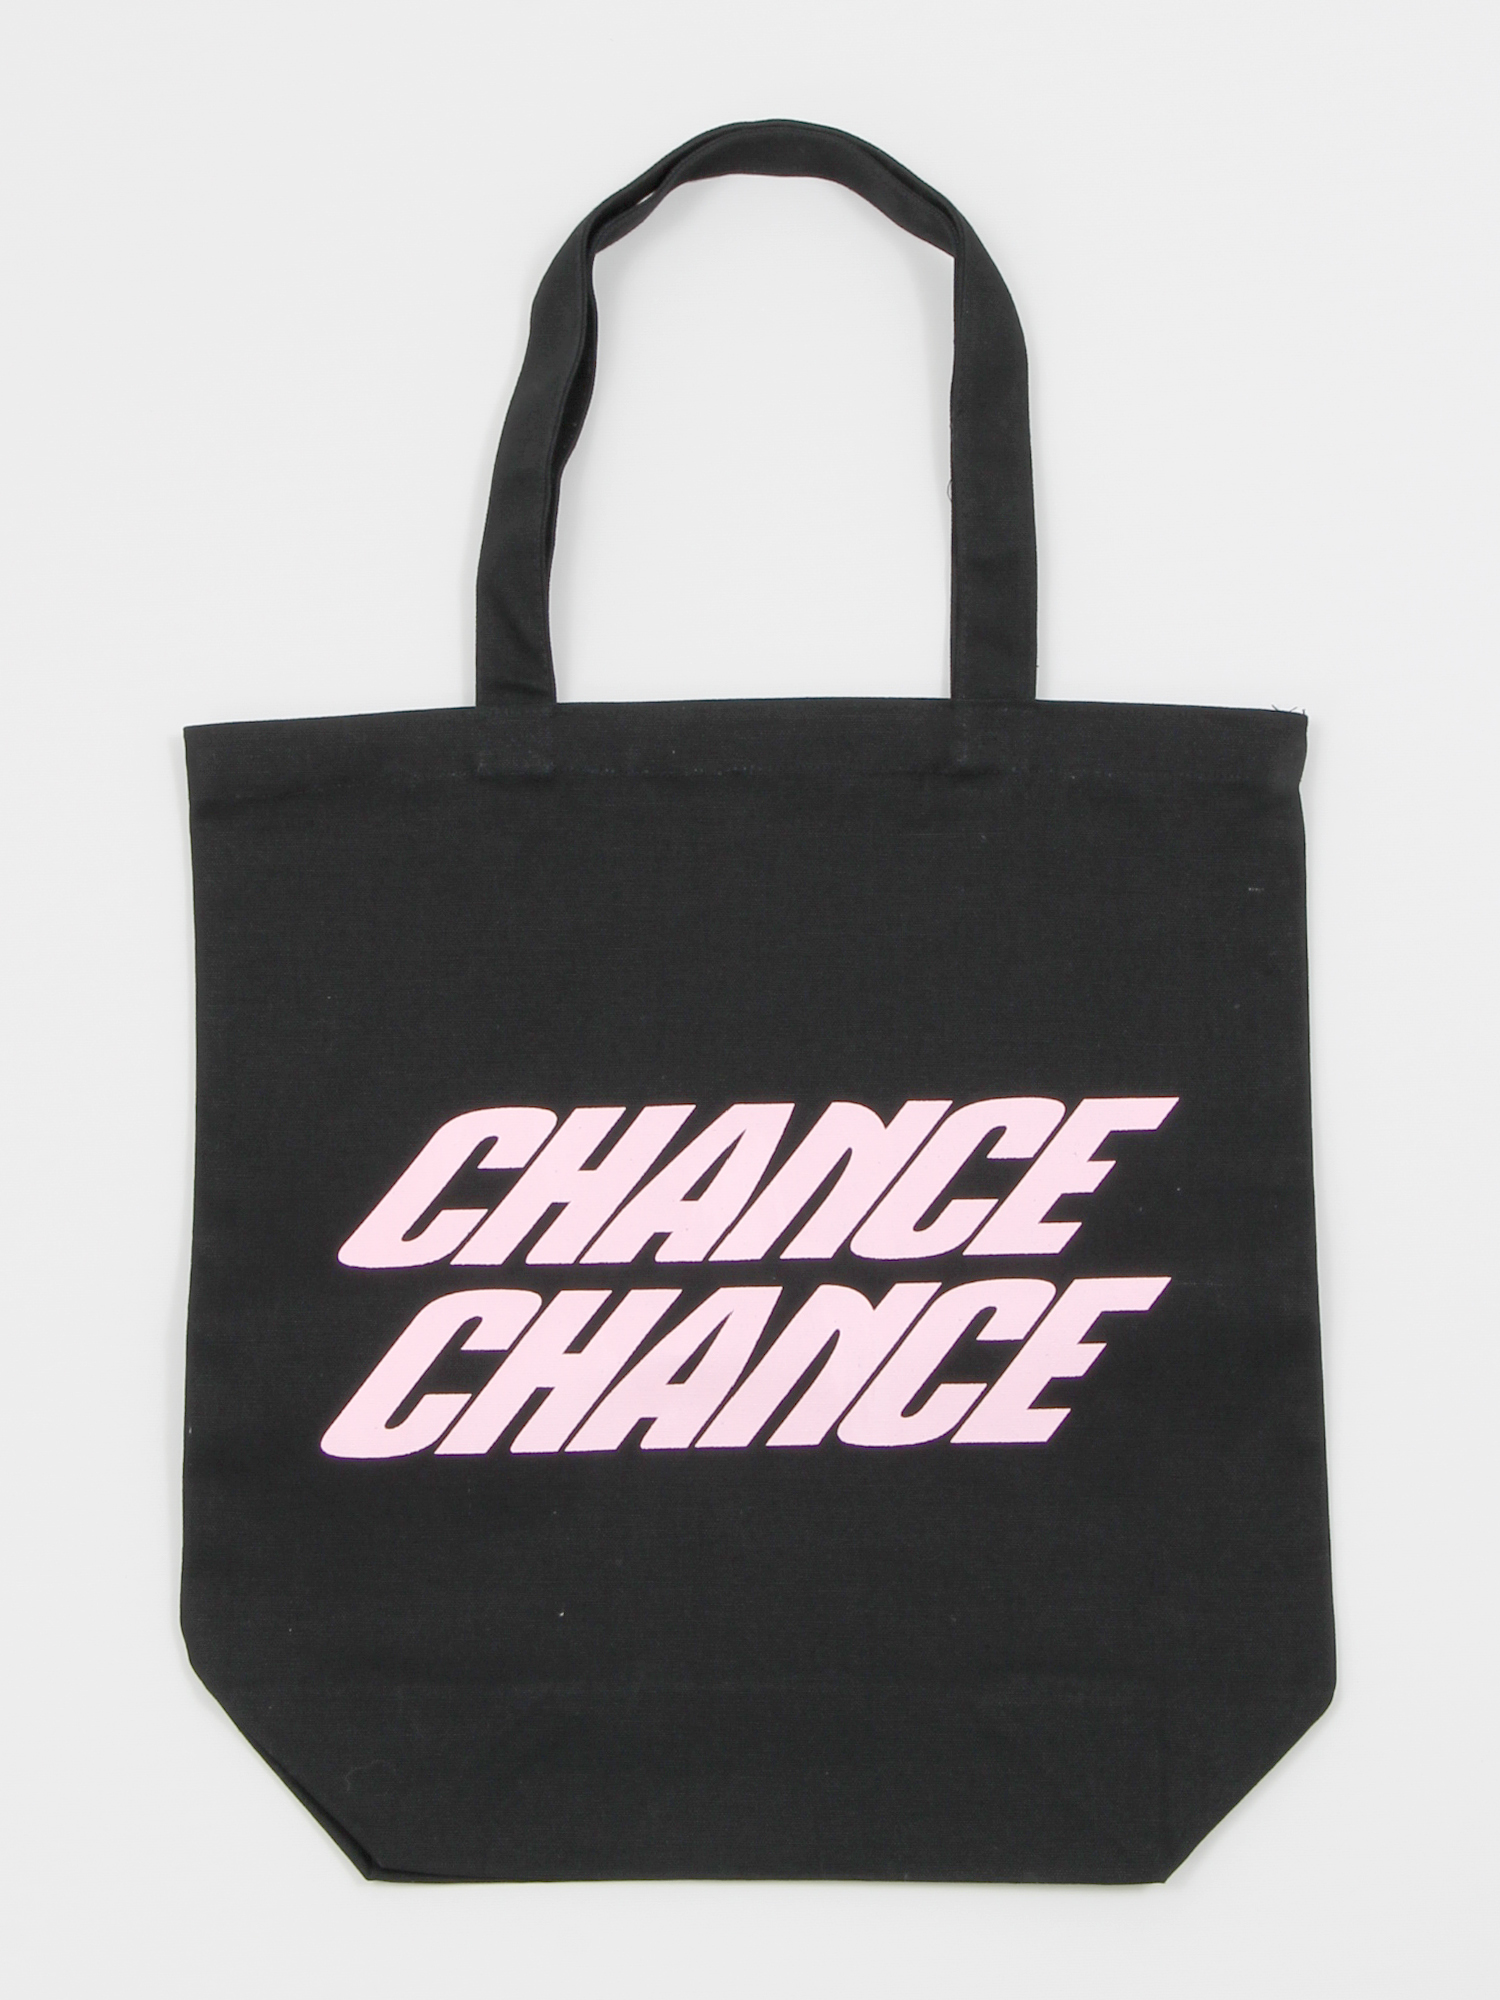 WEGO|CHANCECHANCEトートバッグ